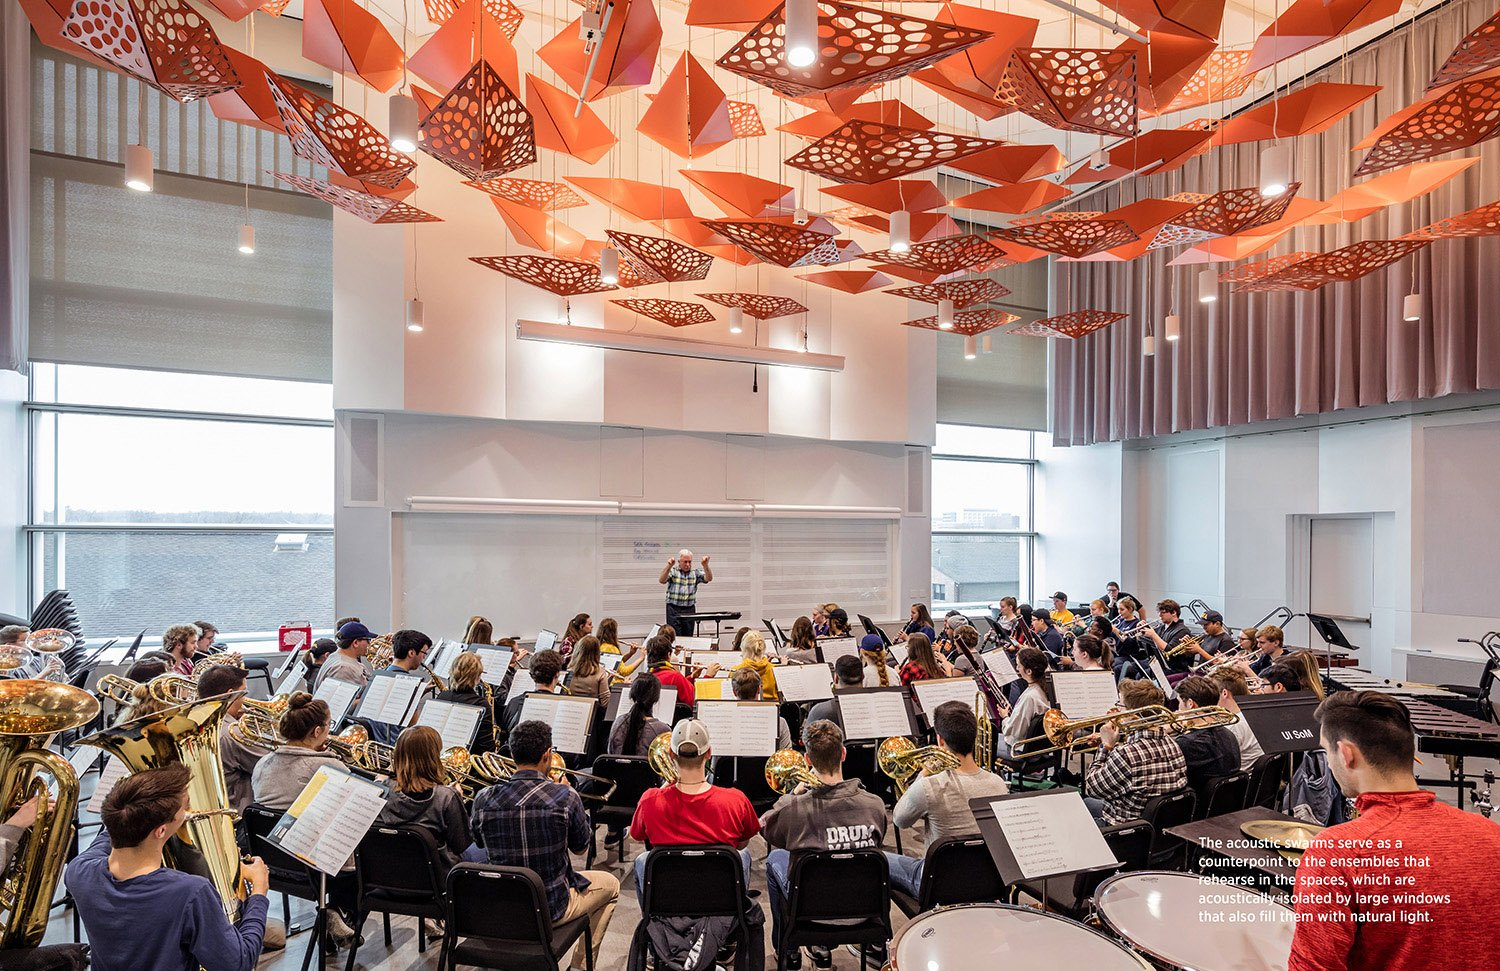 The acoustic swarms serve as a counterpoint to the ensembles that rehearse in the spaces, which are acoustically isolated by large windows that also fill them with natural light. Tim Griffith}